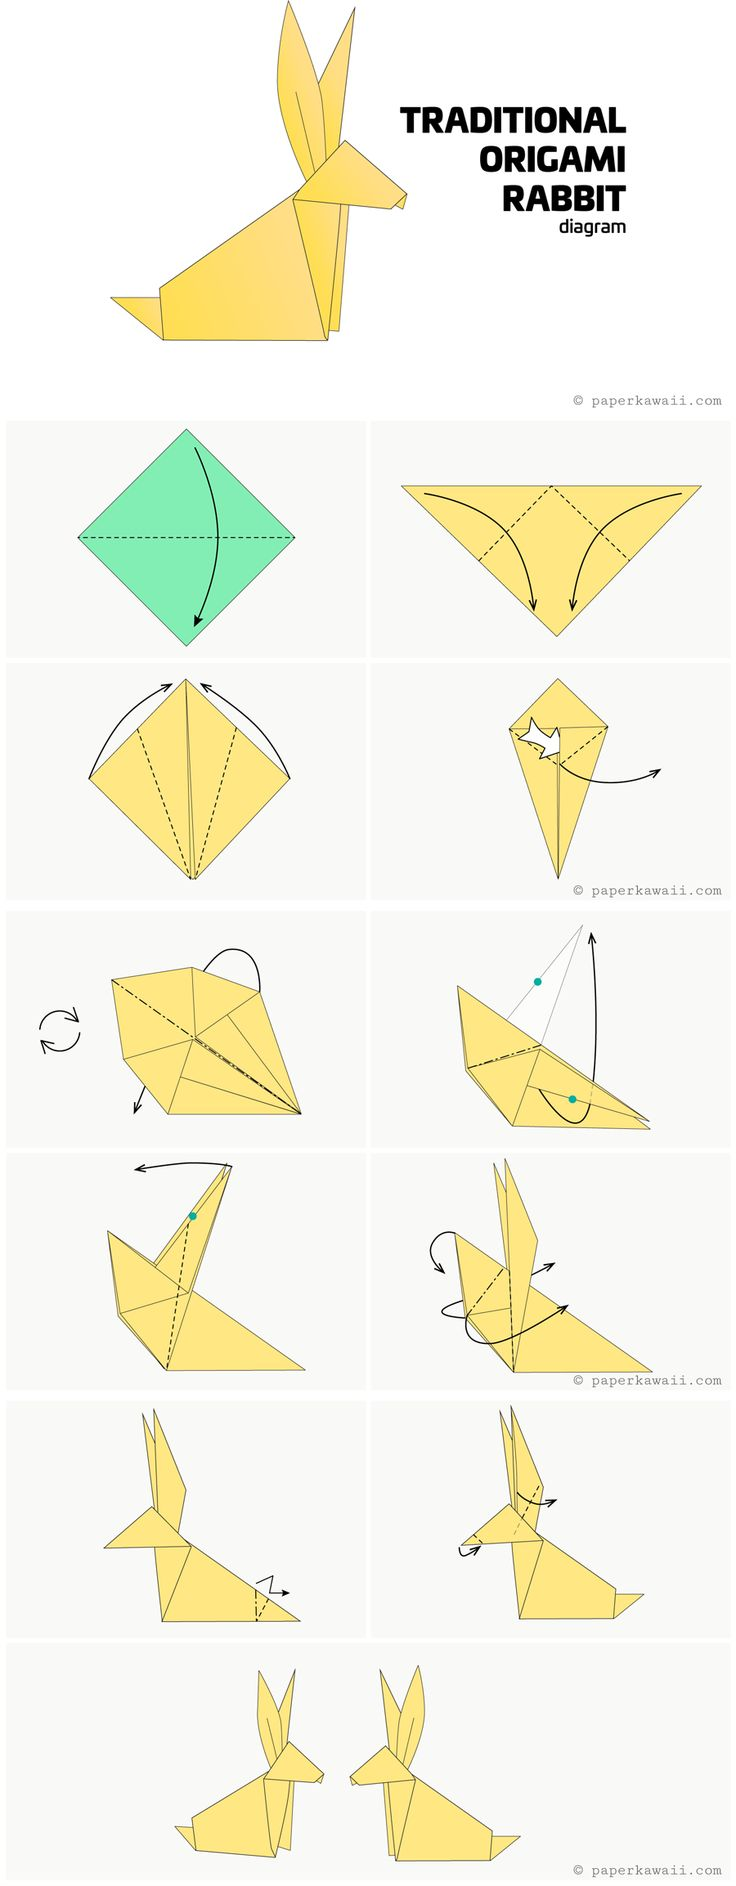 Best 25+ Kids origami ideas on Pinterest | Easy origami ... - photo#33